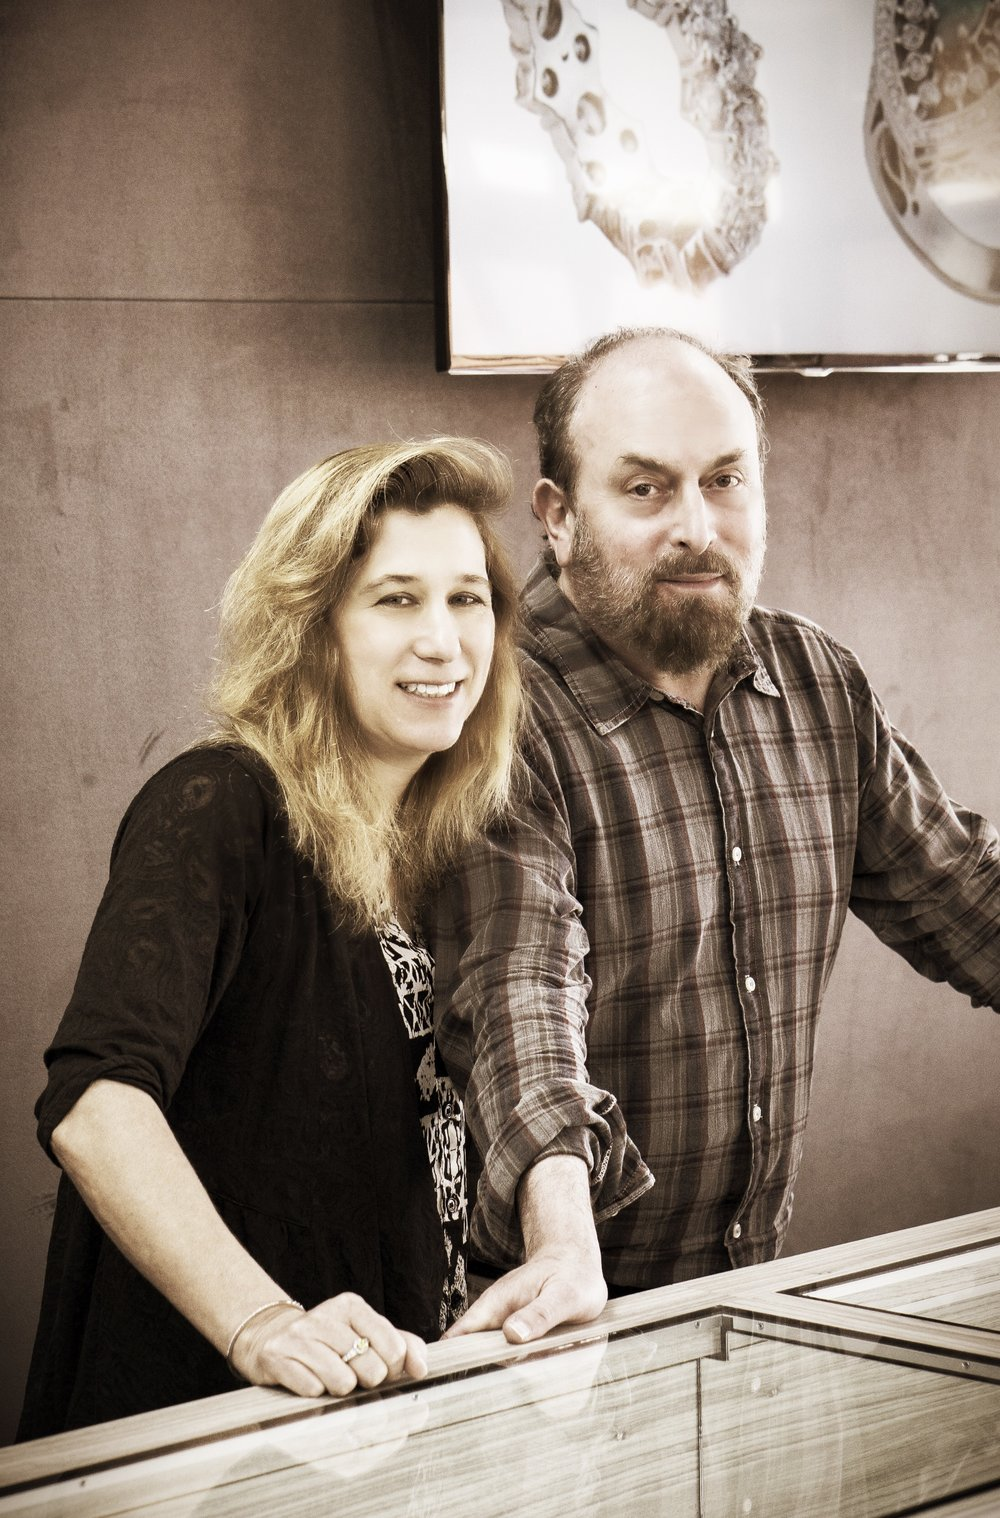 Jill and Scott Lefcourt - As the owners of Scottsdale Fine Jewelers, they put the 'Fine' in Pepper Fine. Partners in life and partners in business these two create a dynamic you can't find anywhere. Scott is GIA trained and sneezes without covering his mouth; Jill is a business shark and doesn't know her own strength.